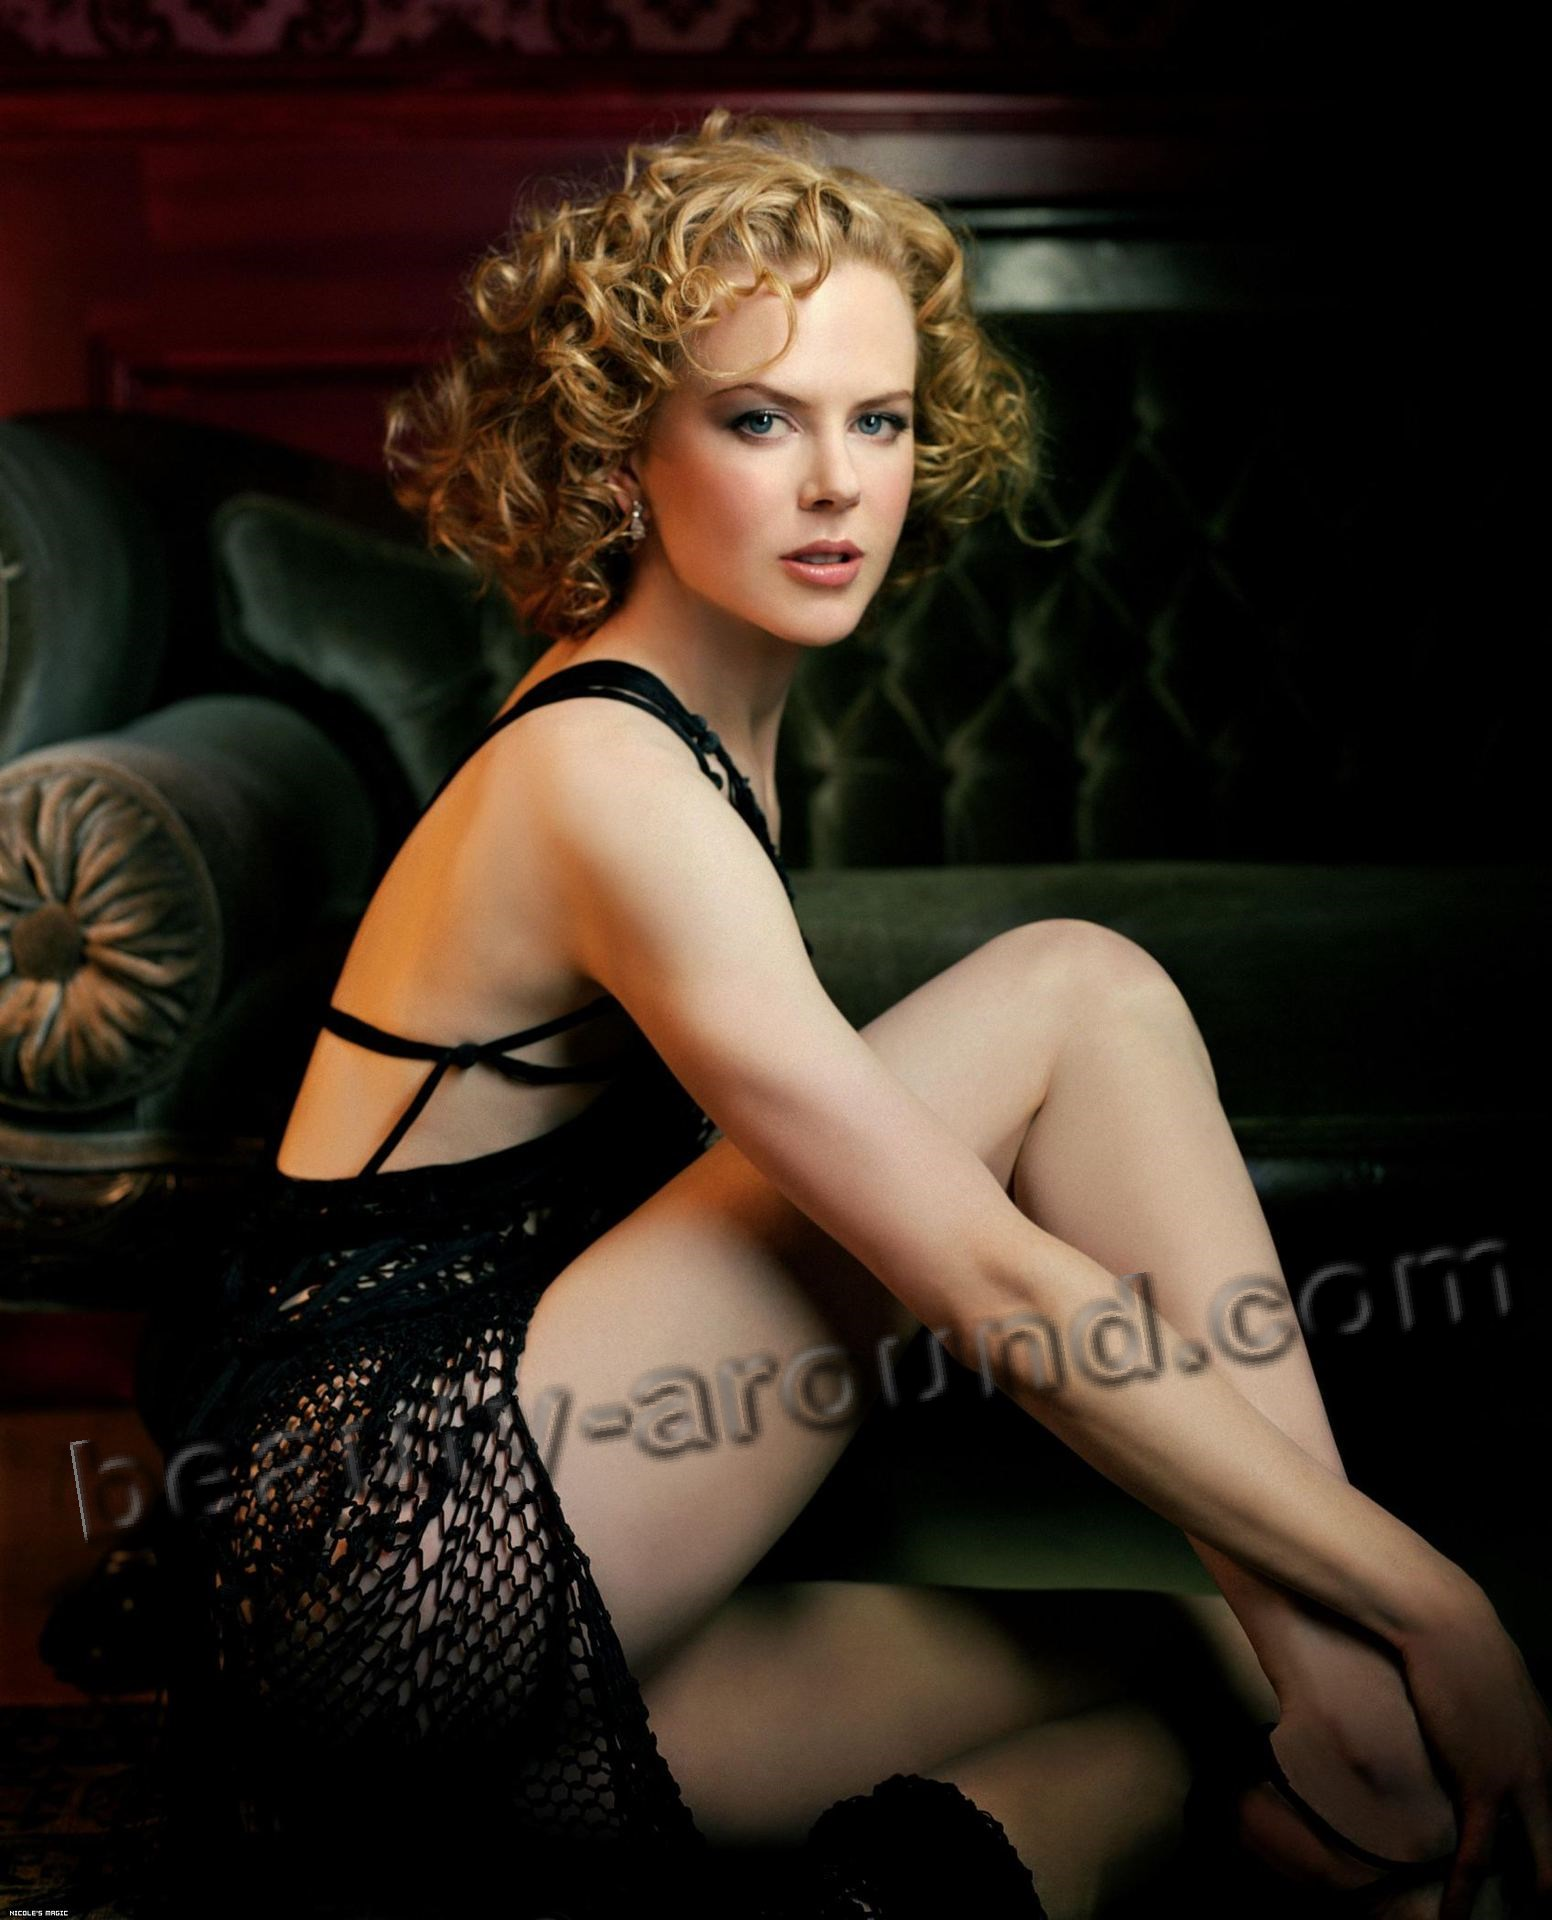 beautiful Australian women photos, Nicole Kidman Australian and American actress photo